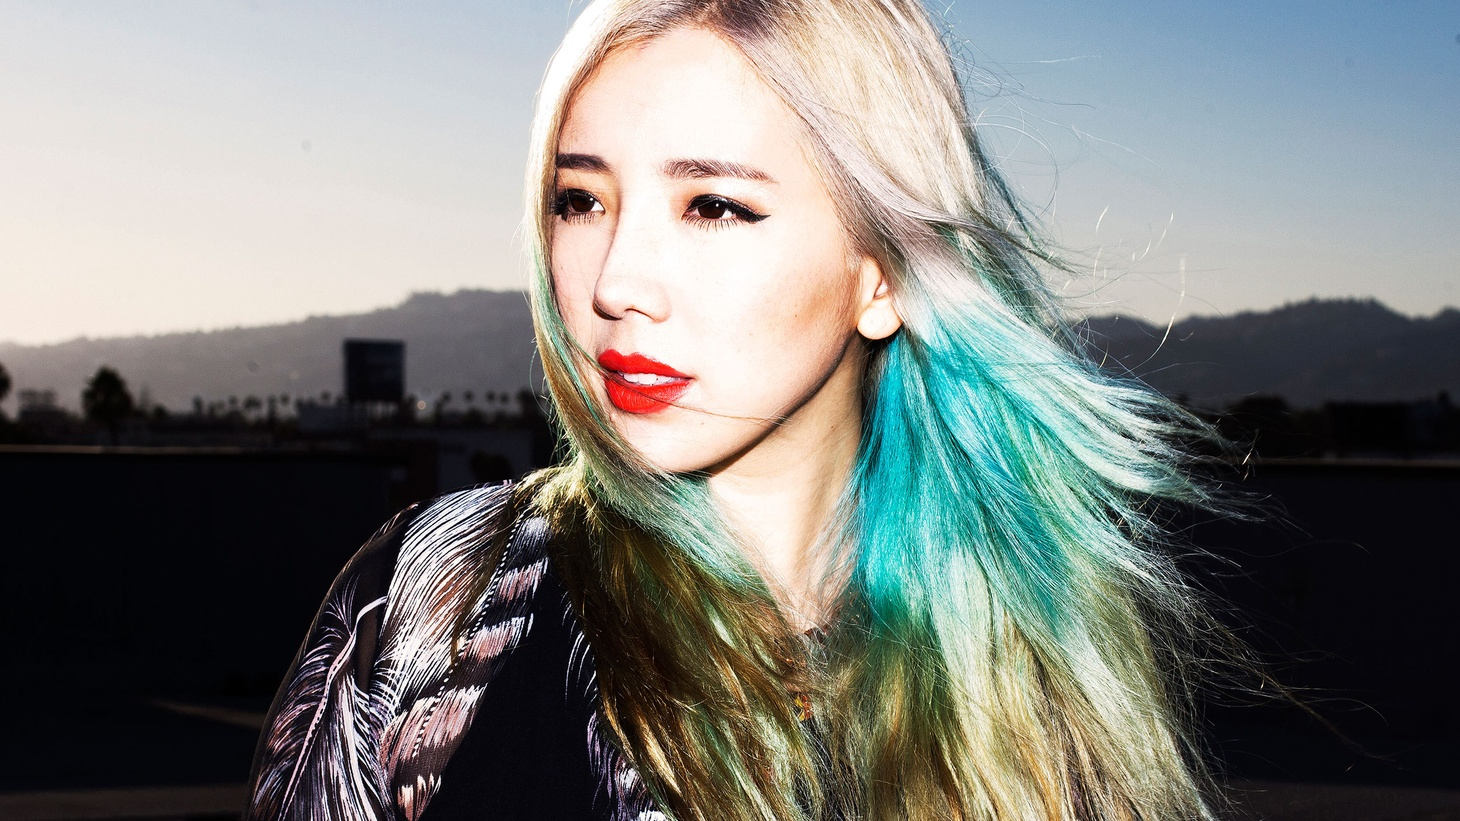 Super talented LA producer Tokimonsta is one of KCRW's most played artists of the moment.